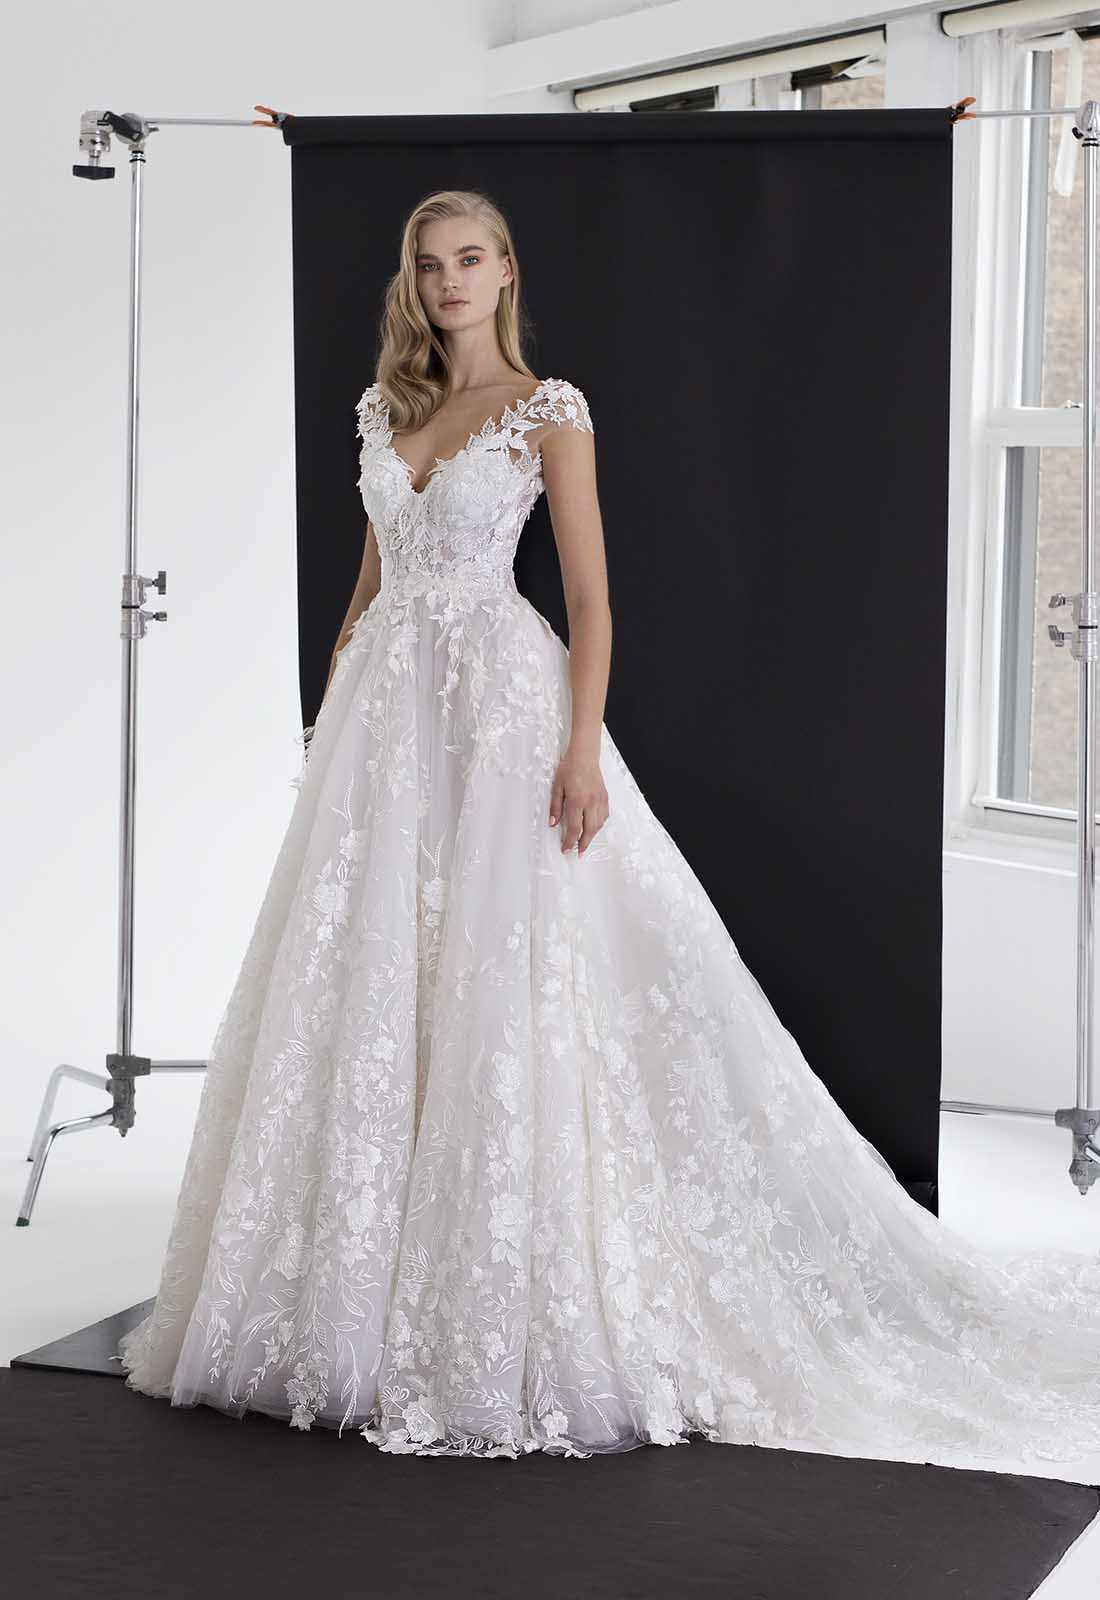 Floral Applique Tulle Ball Gown Kleinfeld Bridal